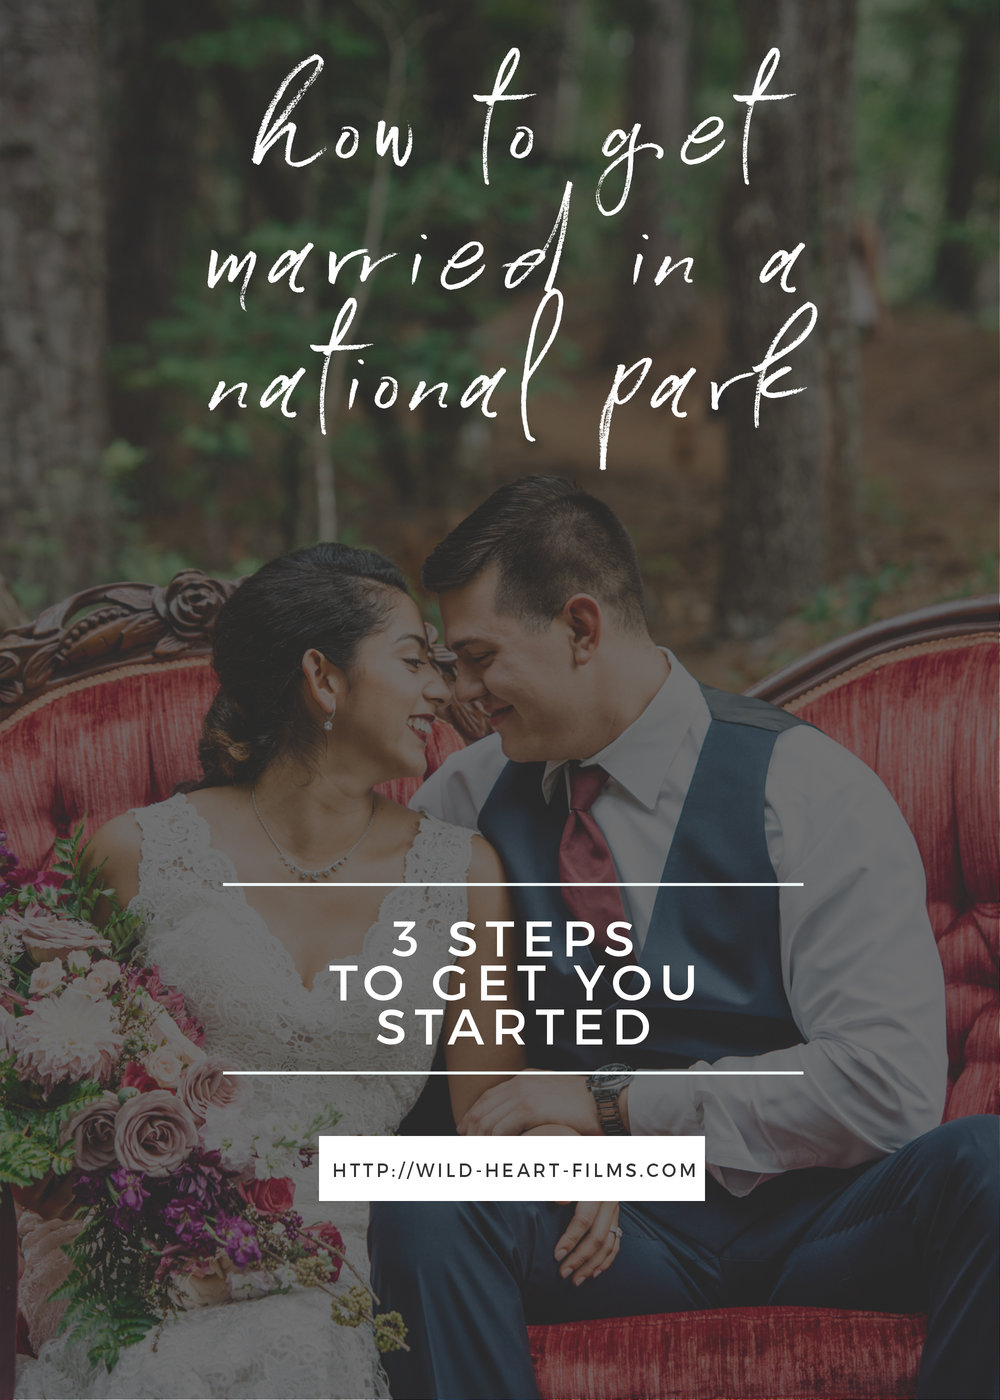 howtogetmarriedinanationalpark.jpg